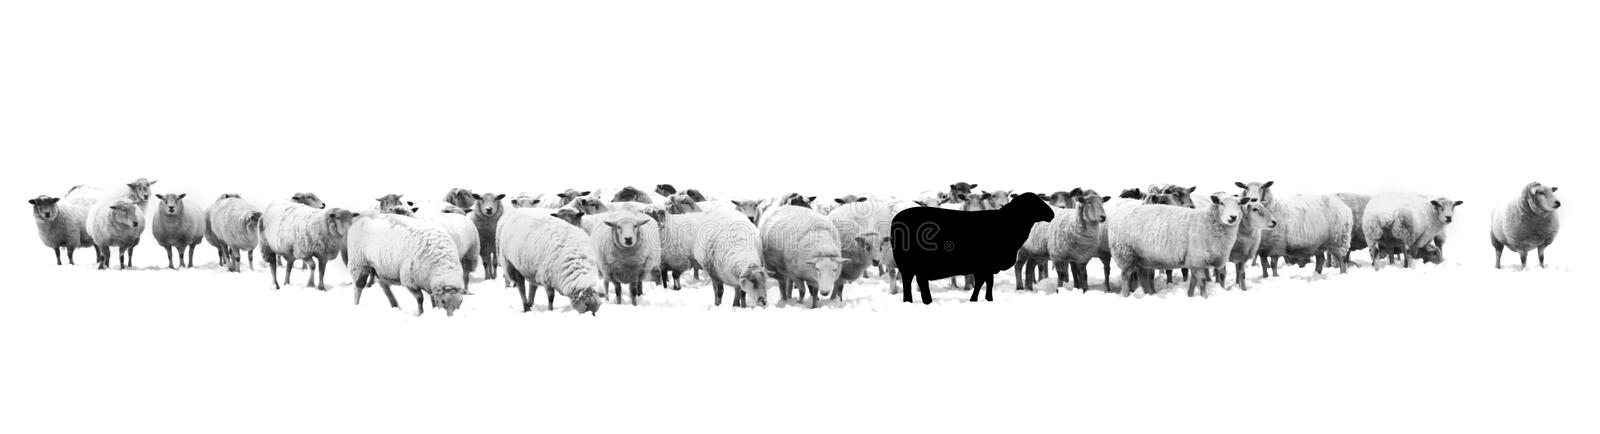 One black sheep standing in the middle of a flock of white sheep royalty free stock photos